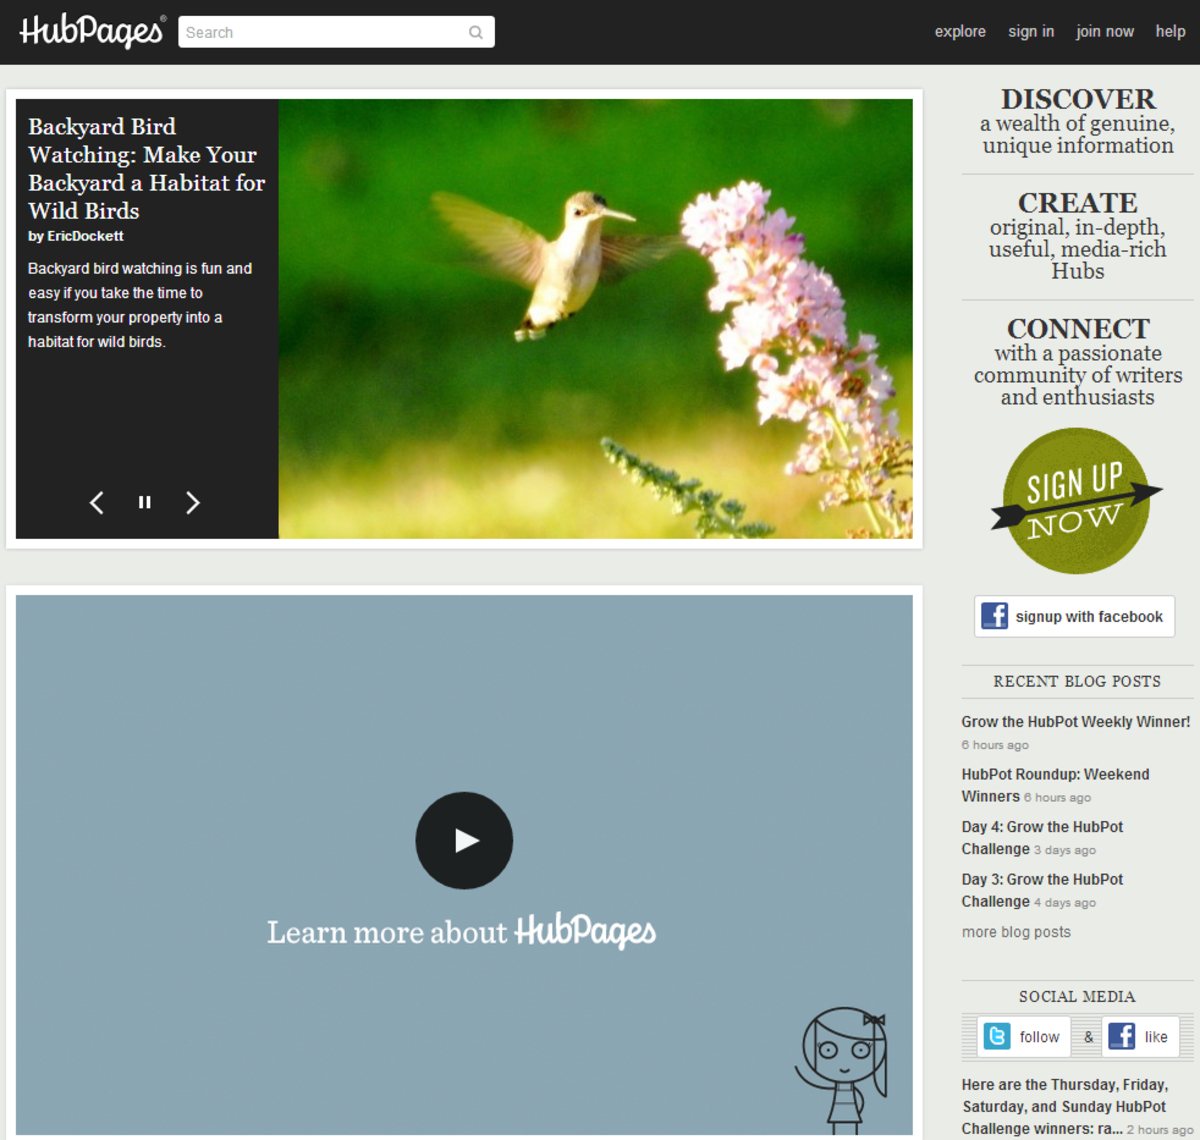 HubPages Home Page (March 2014)